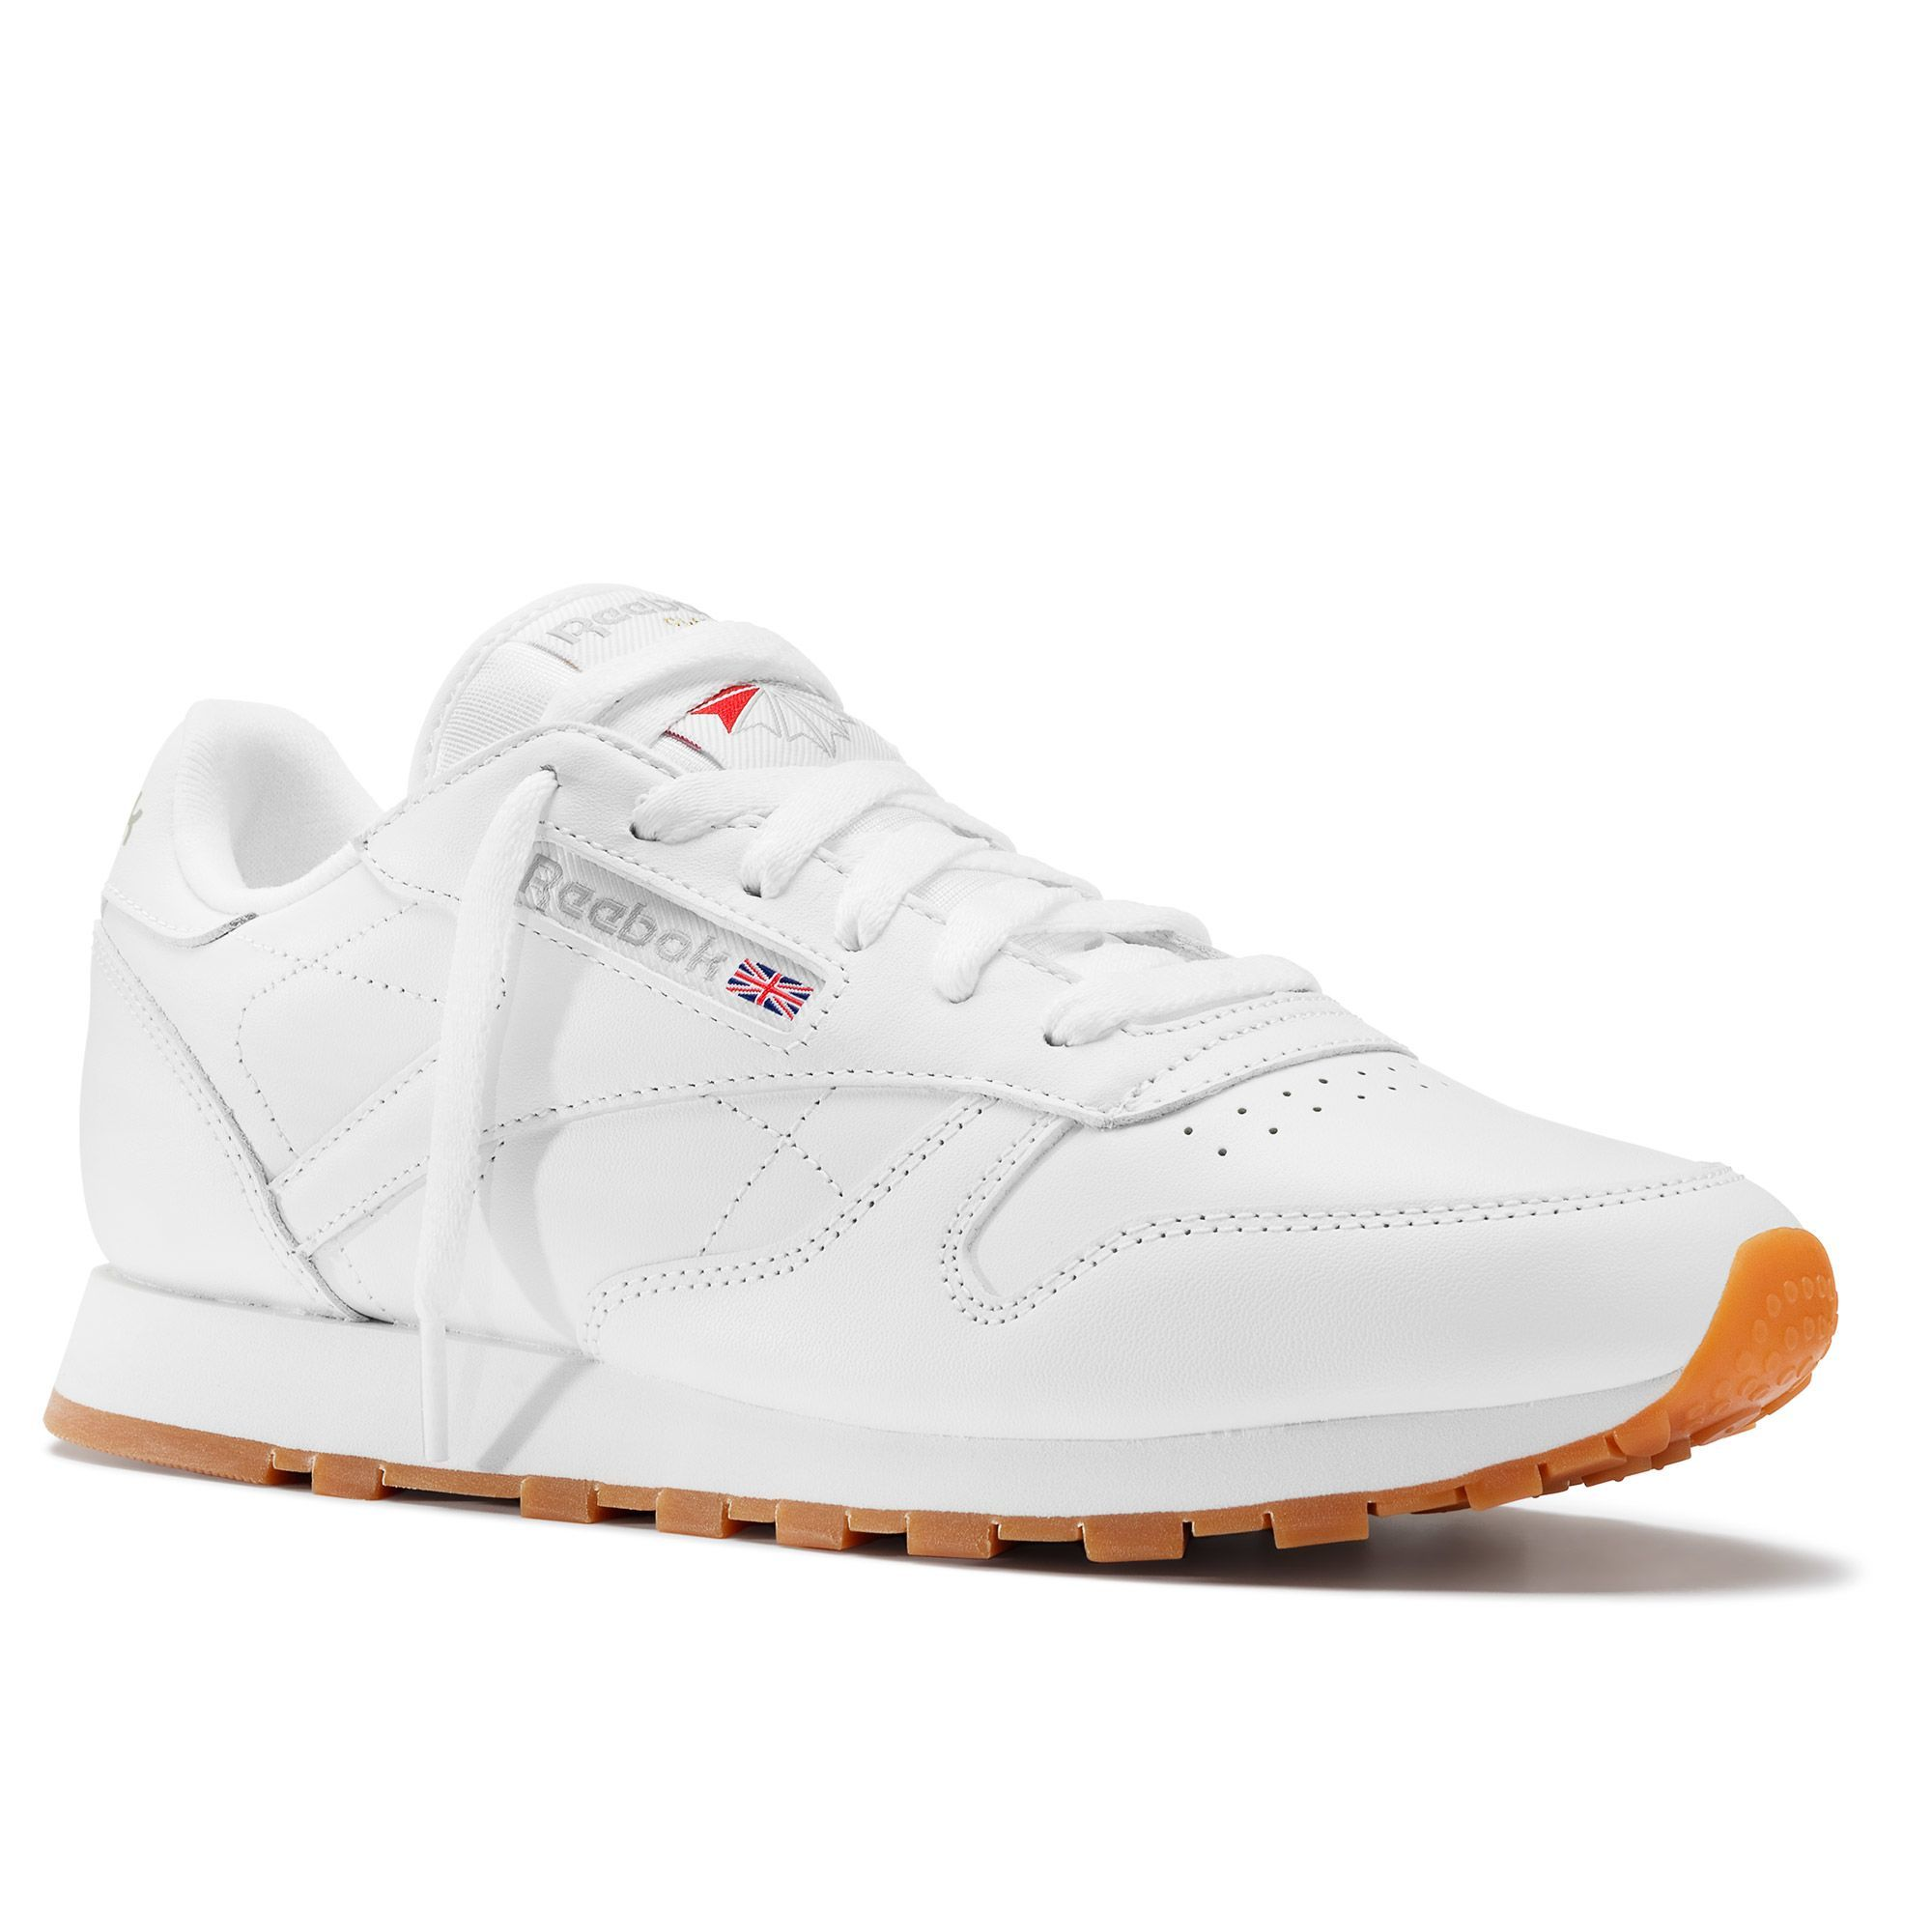 41a3f9ad1ef Reebok - Classic Leather White Gum 49803